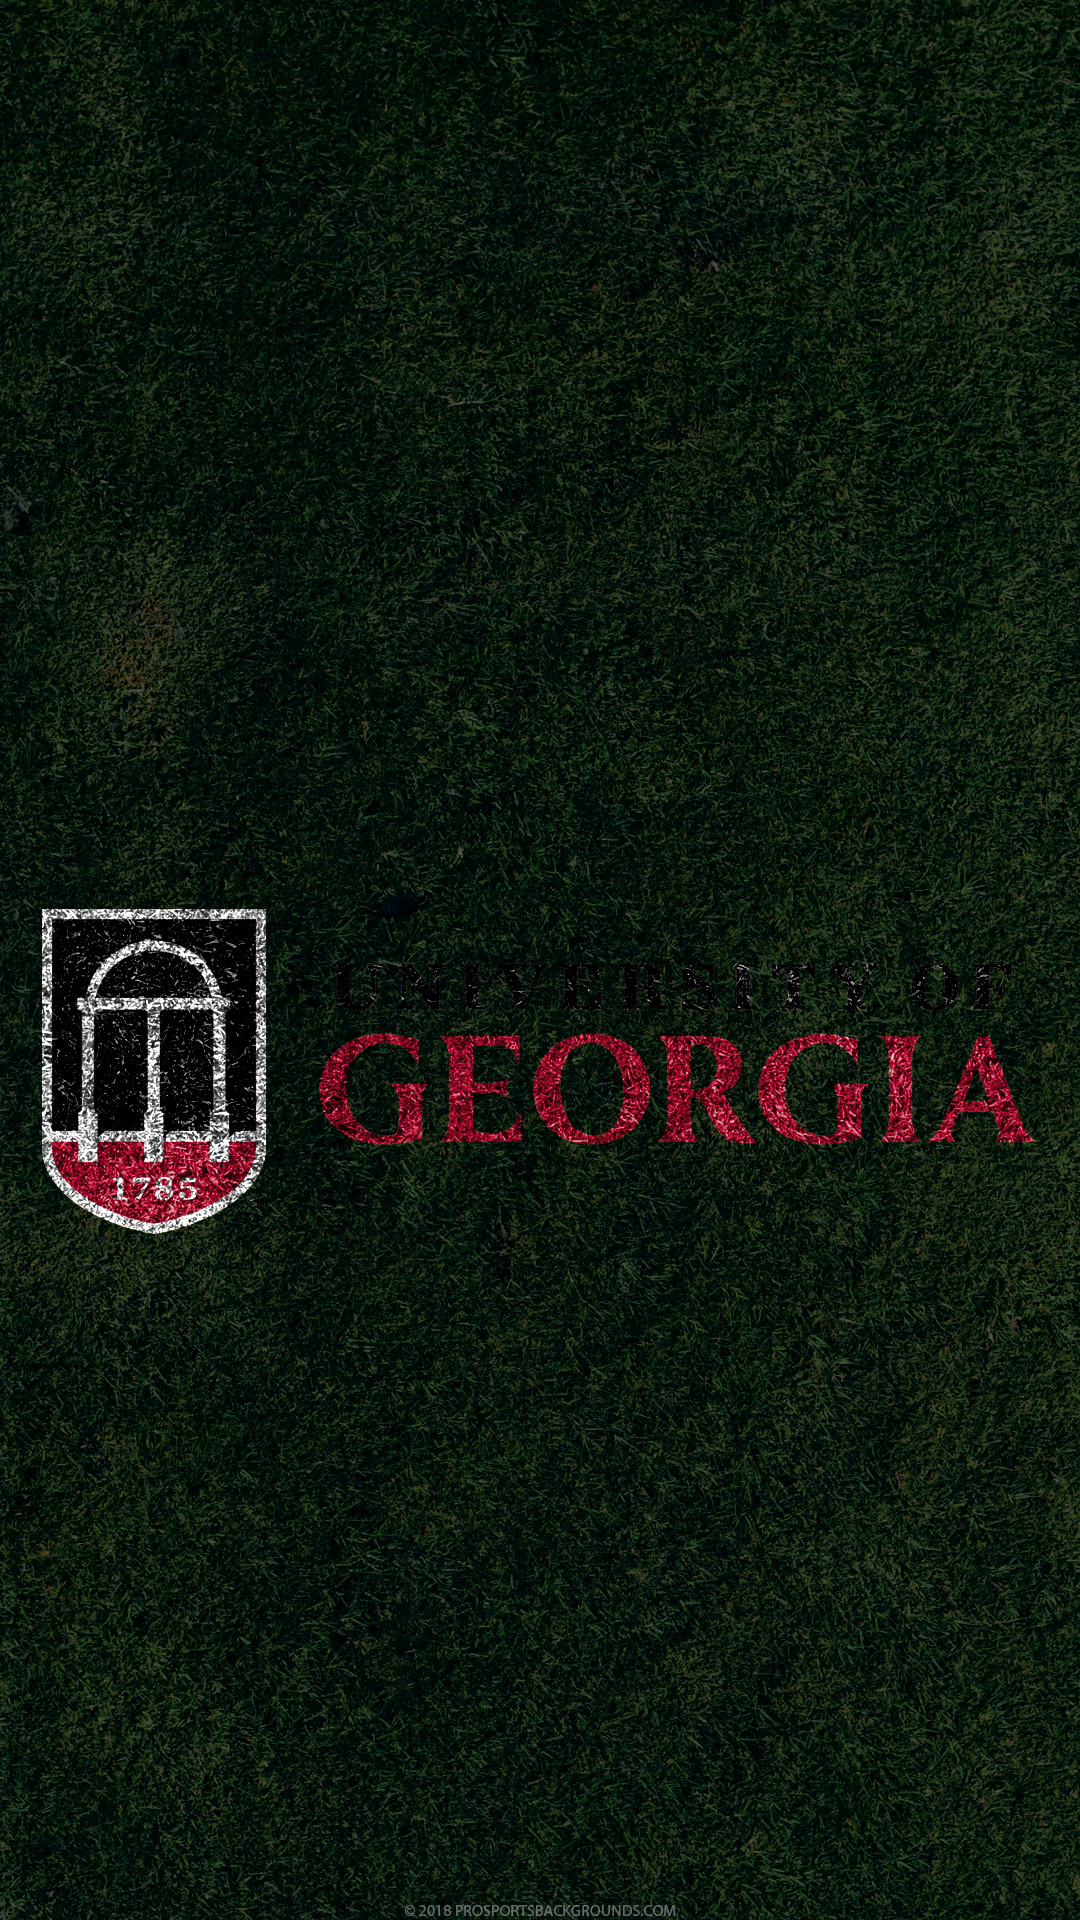 1080x1920 ... Georgia Bulldogs 2018 ncaa football grass team logo wallpaper for  iphone andriod and windows mobile phones